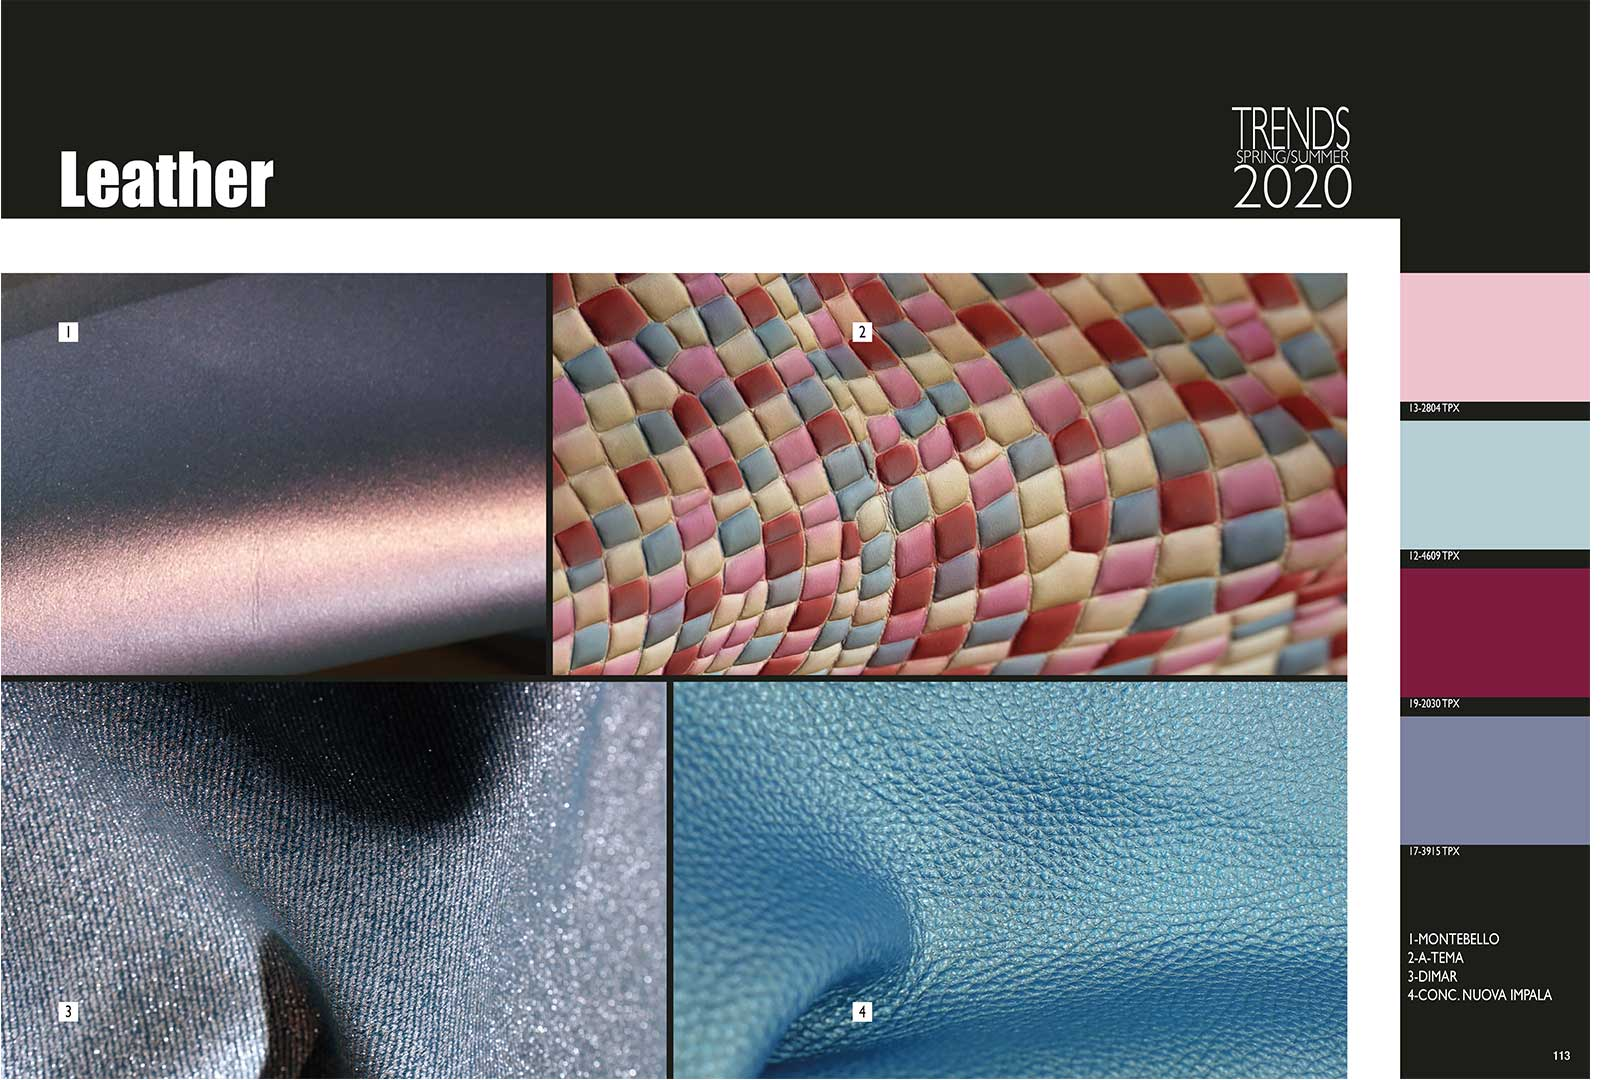 Leather Trends 2020